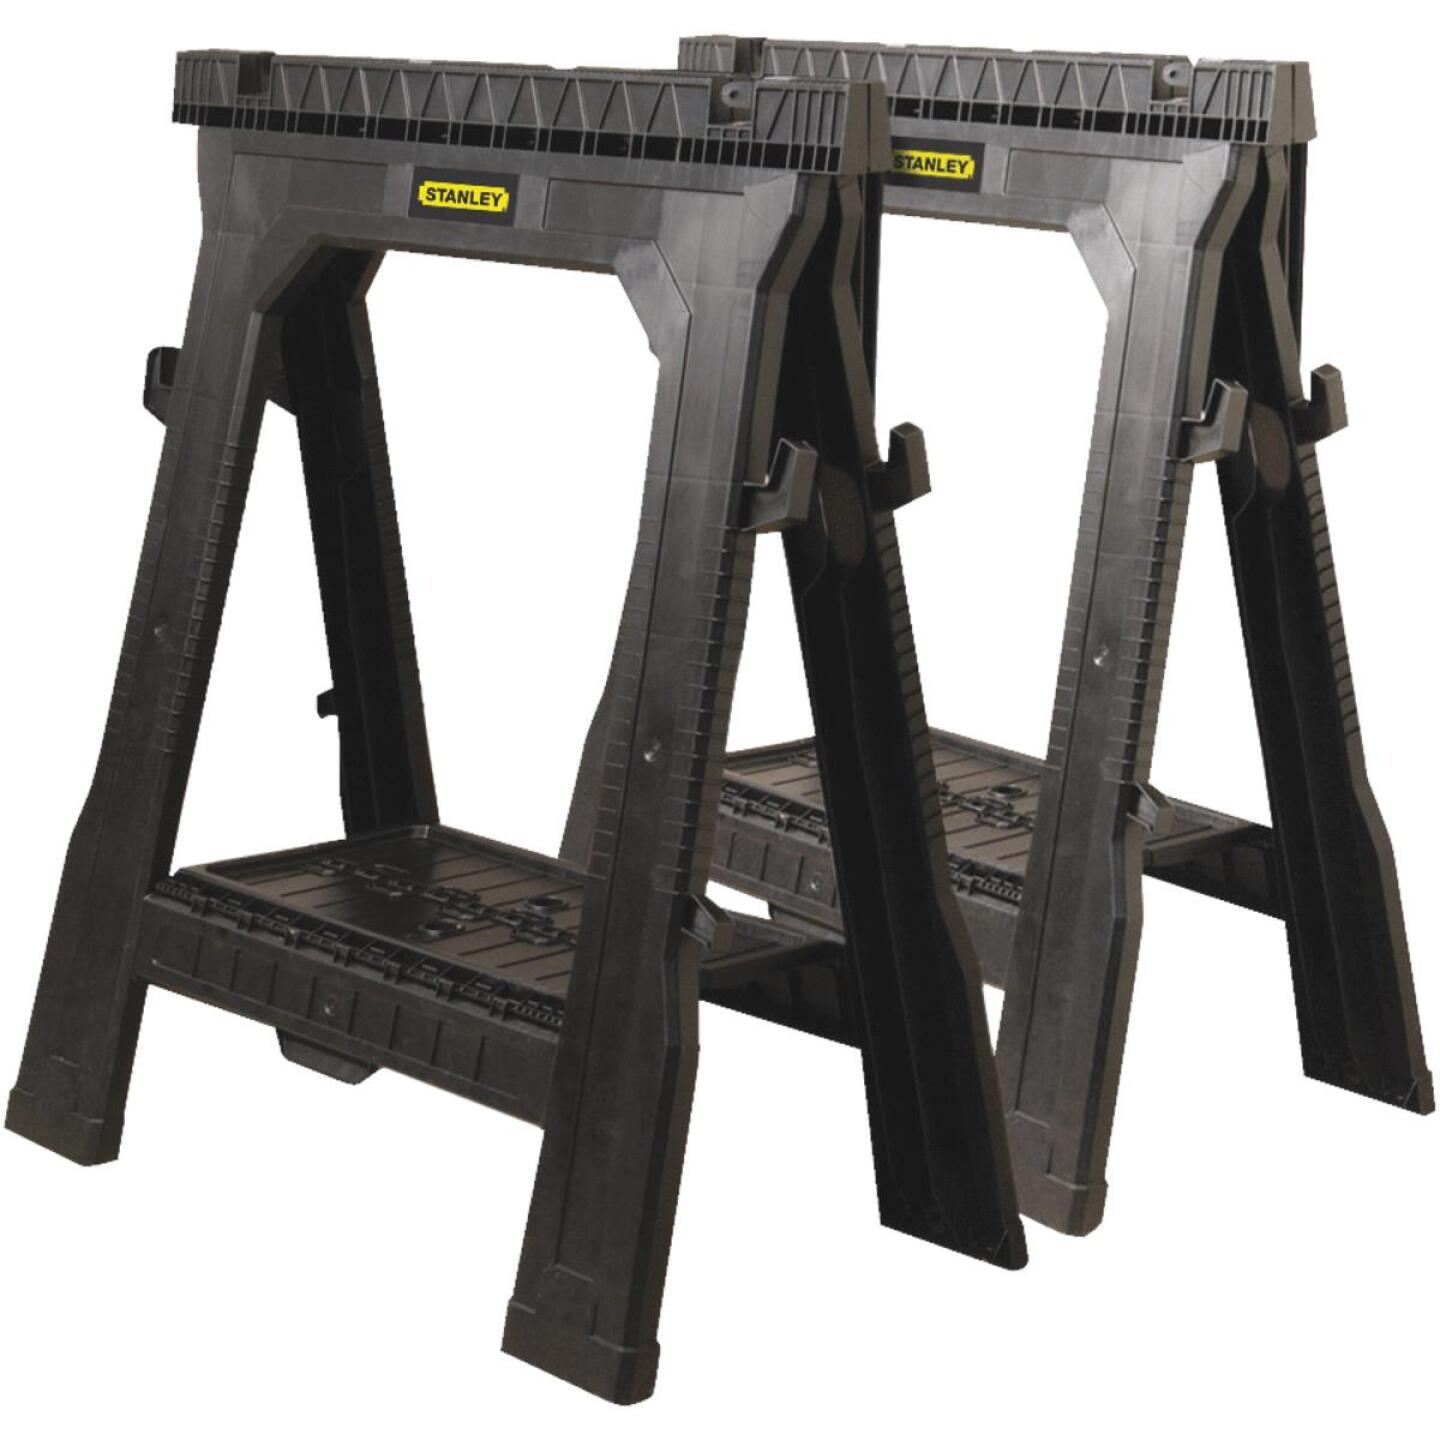 Stanley 27 In. L Plastic Portable Folding Sawhorse, 1000 Lb. Capacity (2-Set) Image 1